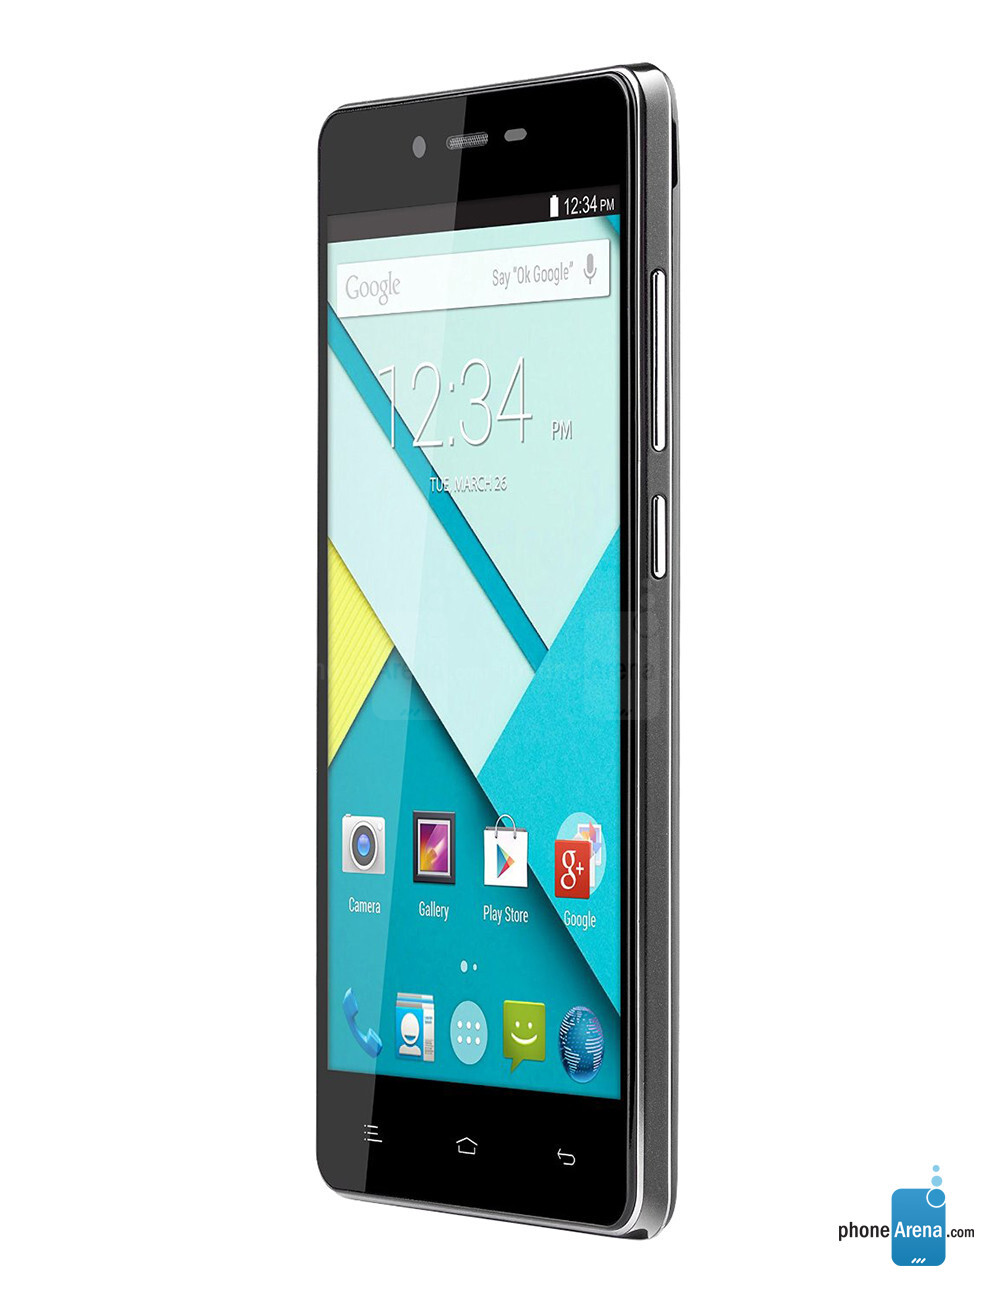 Smartphones With Unusually Large Batteries Here Are 2015s Devices M Plus M5 Ppwerbank 5000 Mah Silver Blu Studio Energy